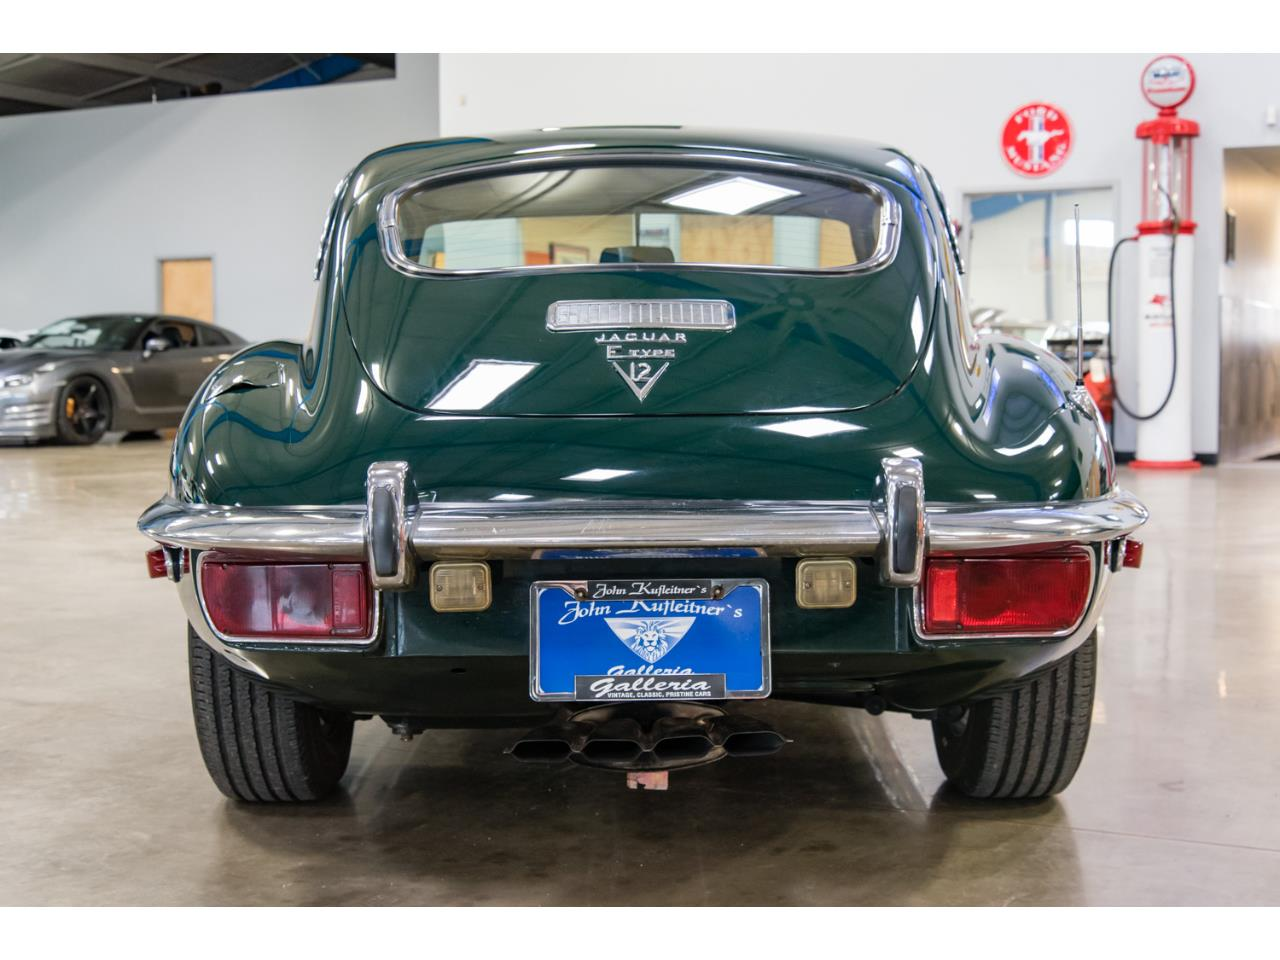 Large Picture of Classic '72 Jaguar E-Type located in Salem Ohio - $54,800.00 Offered by John Kufleitner's Galleria - Q55P